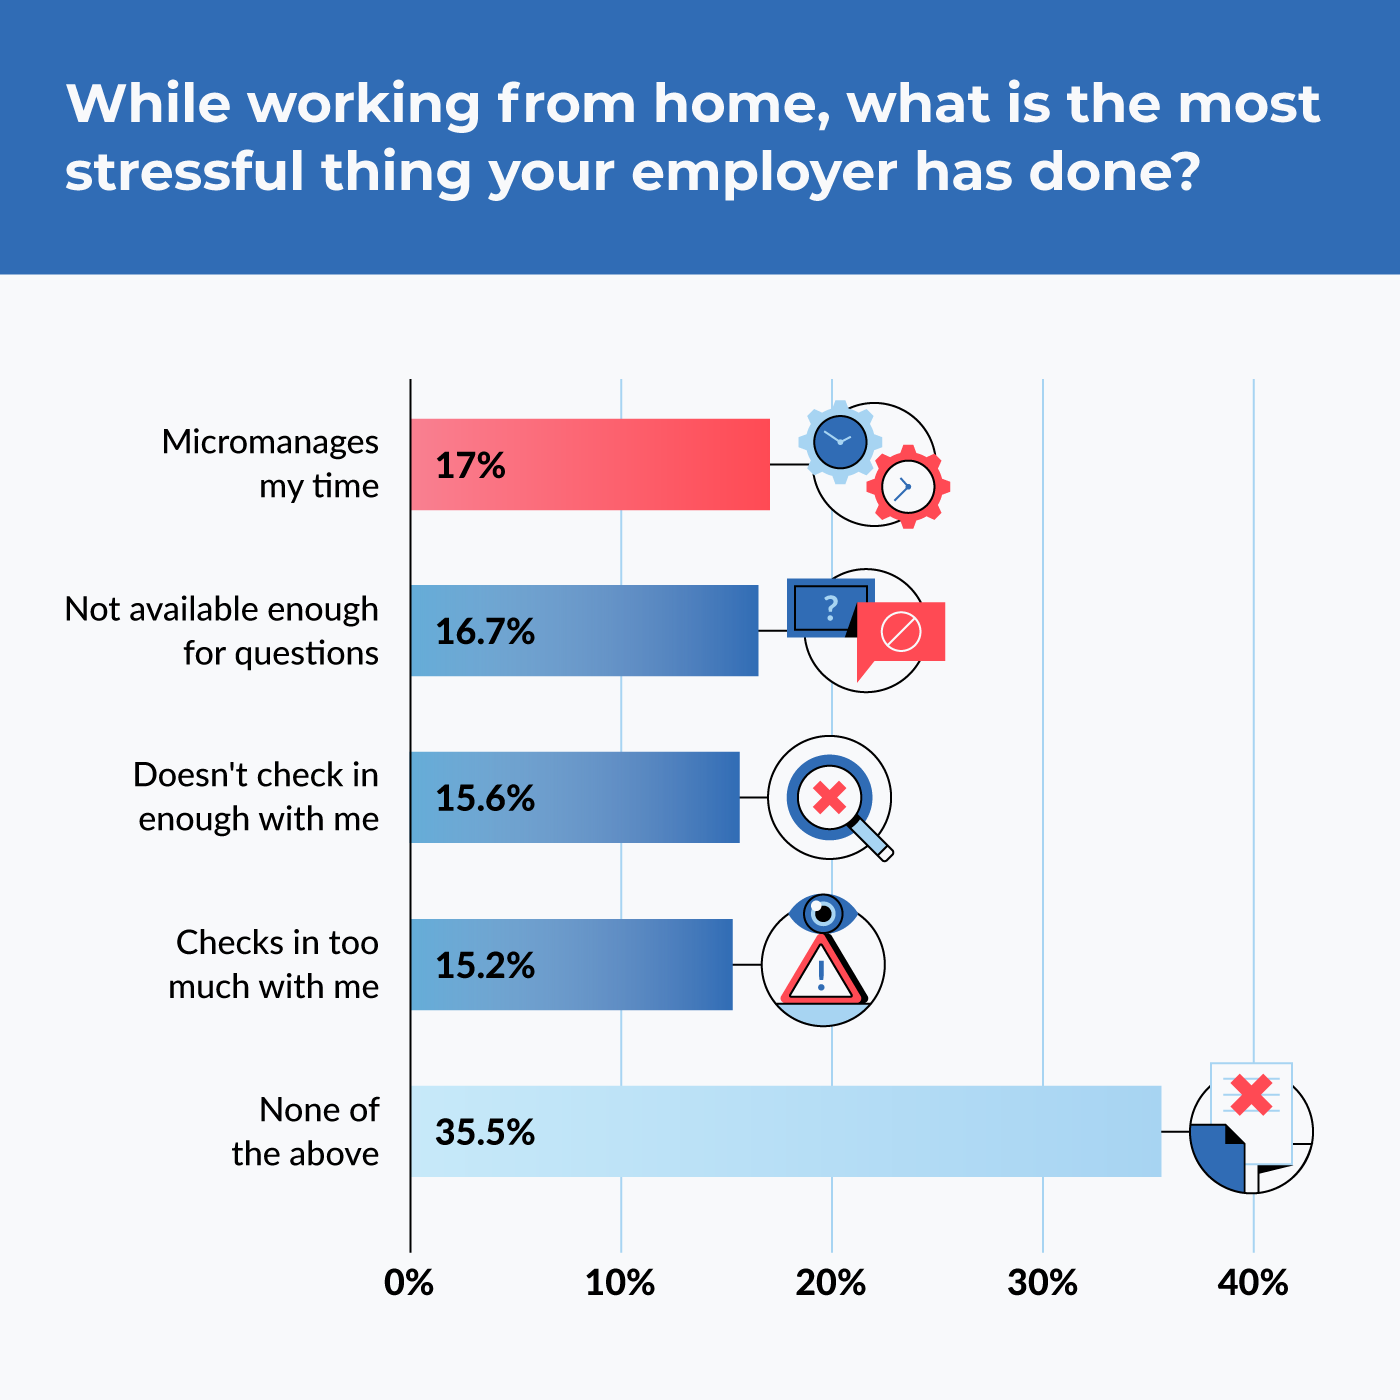 while working from home, what is the most stressful thing your employer has done